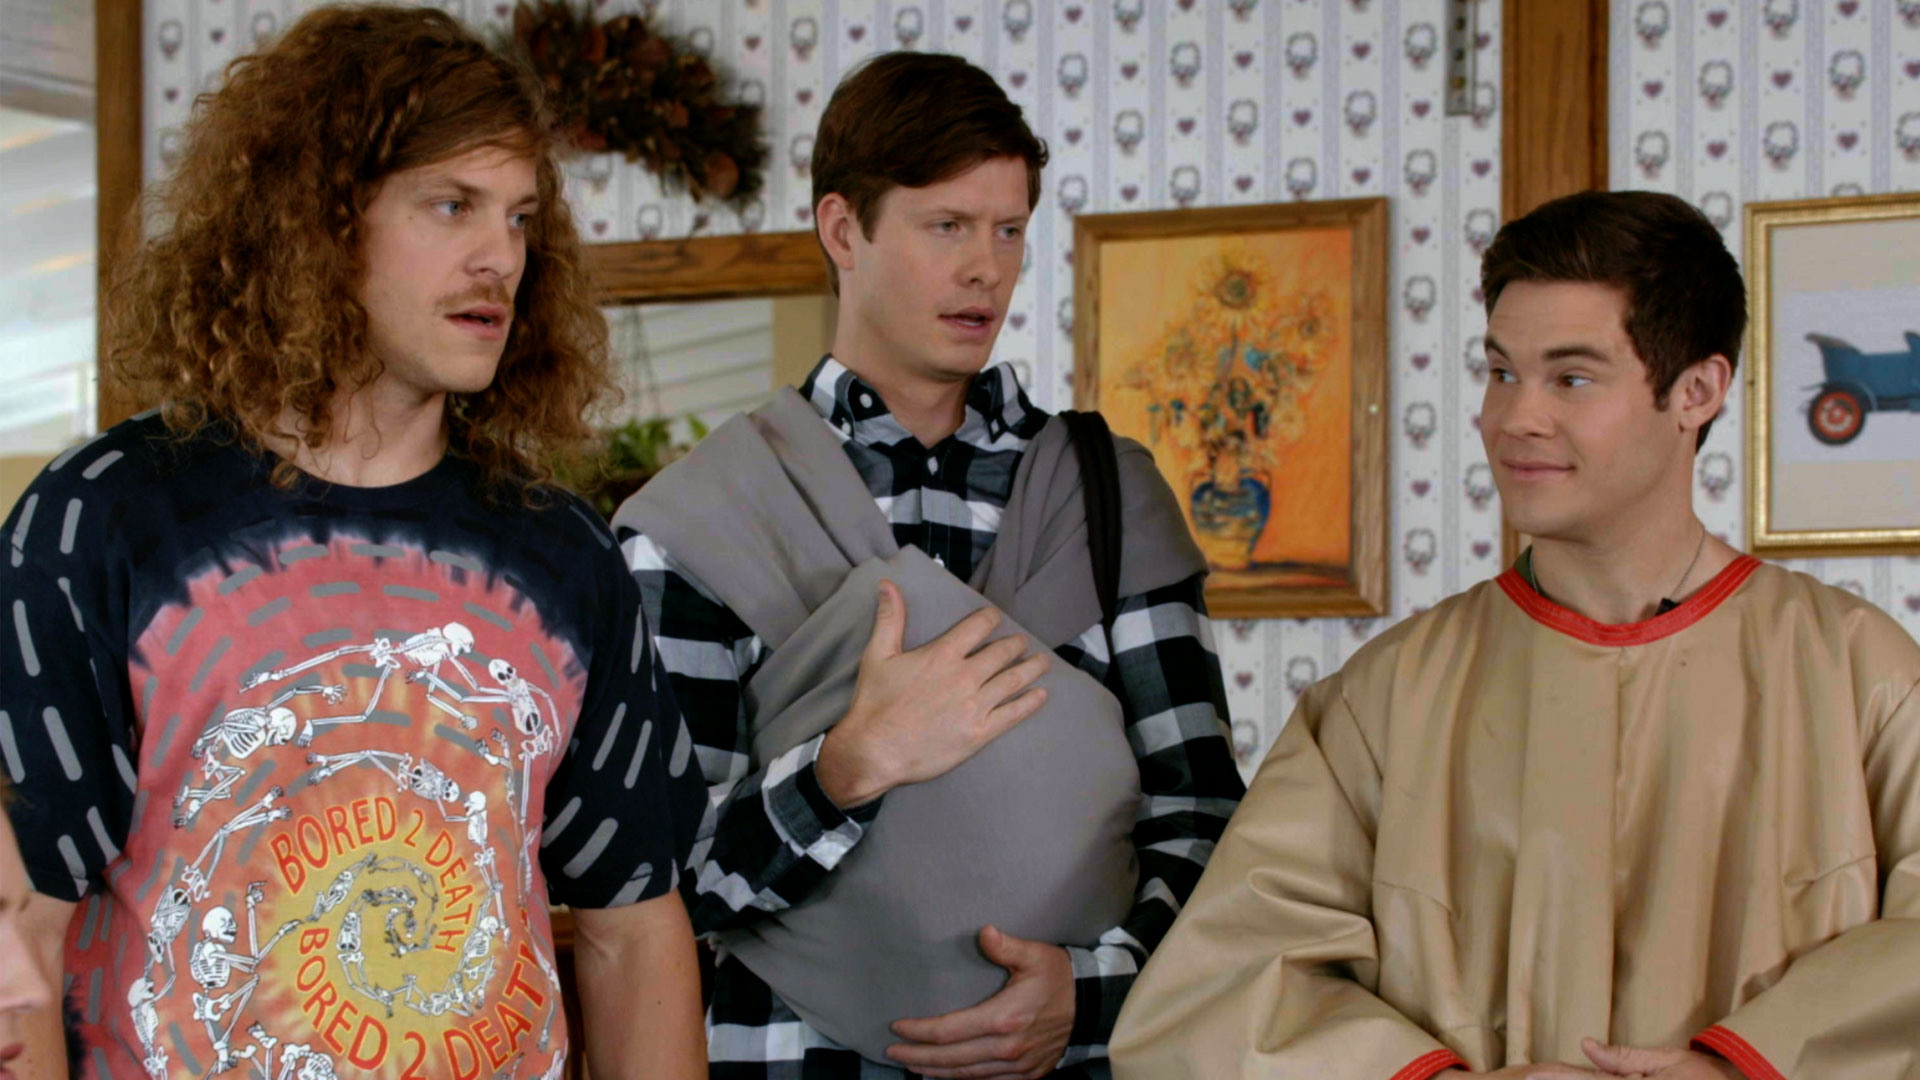 WORKAHOLICS - BLAKE LANDS MONTEZ A THREESOME